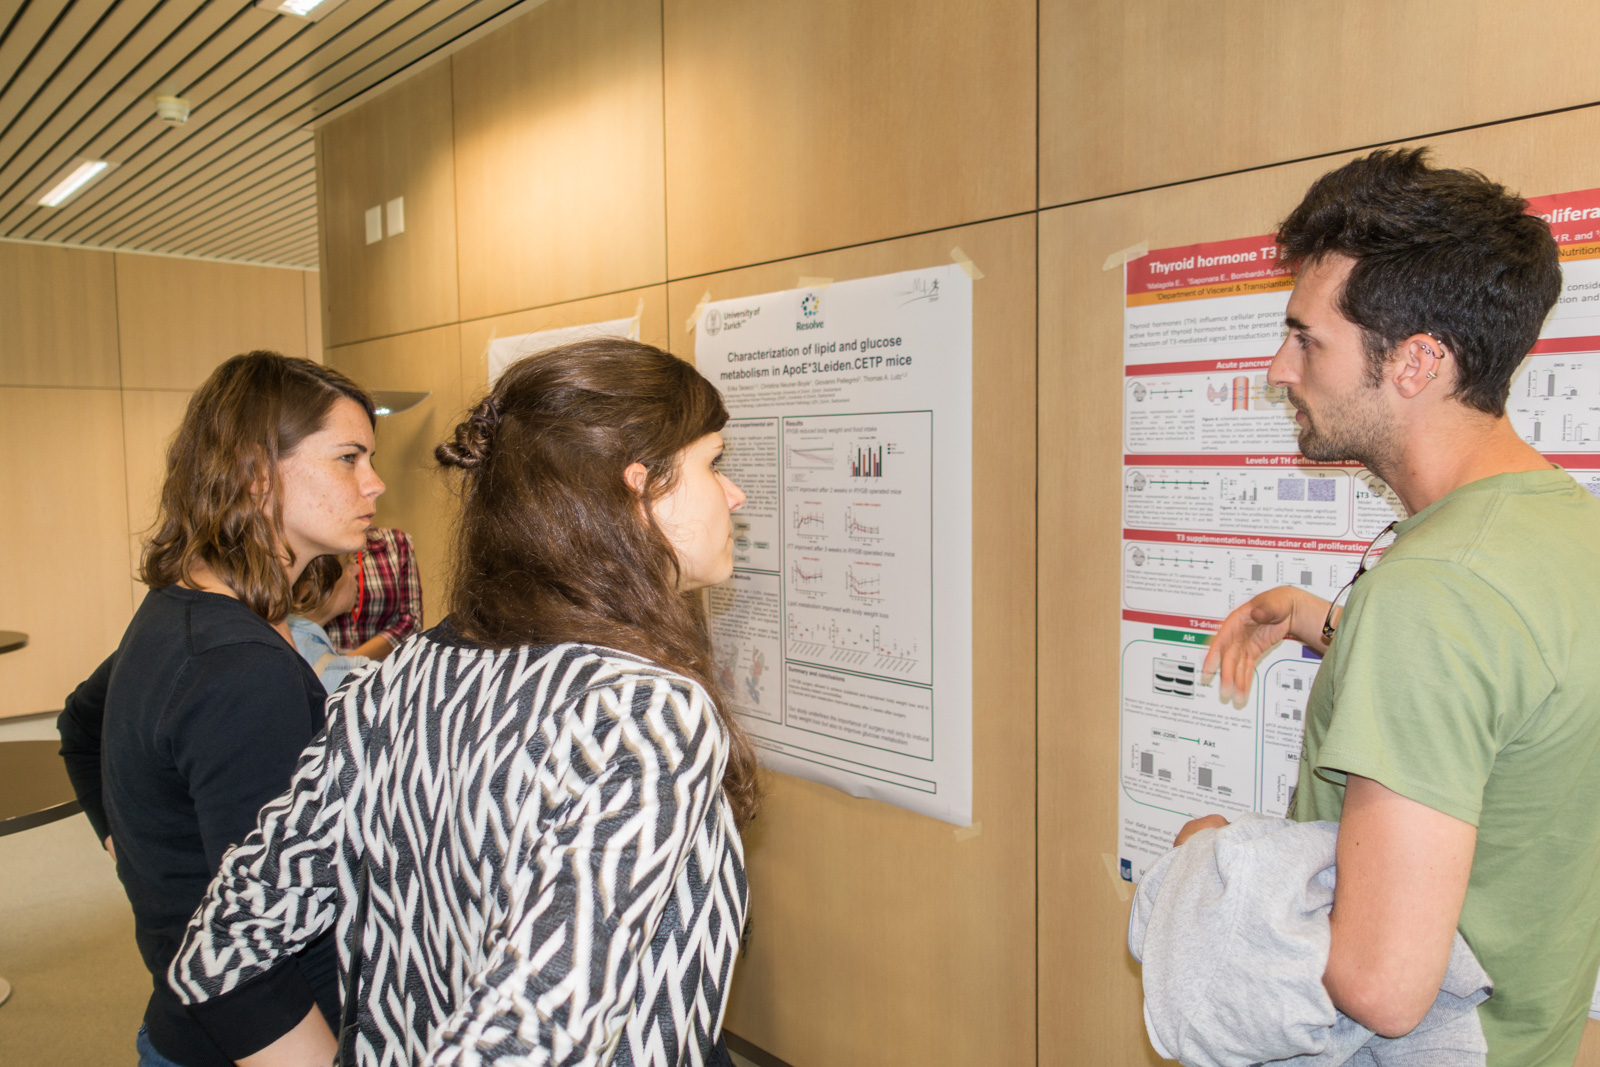 <p>Impression from the poster session</p>